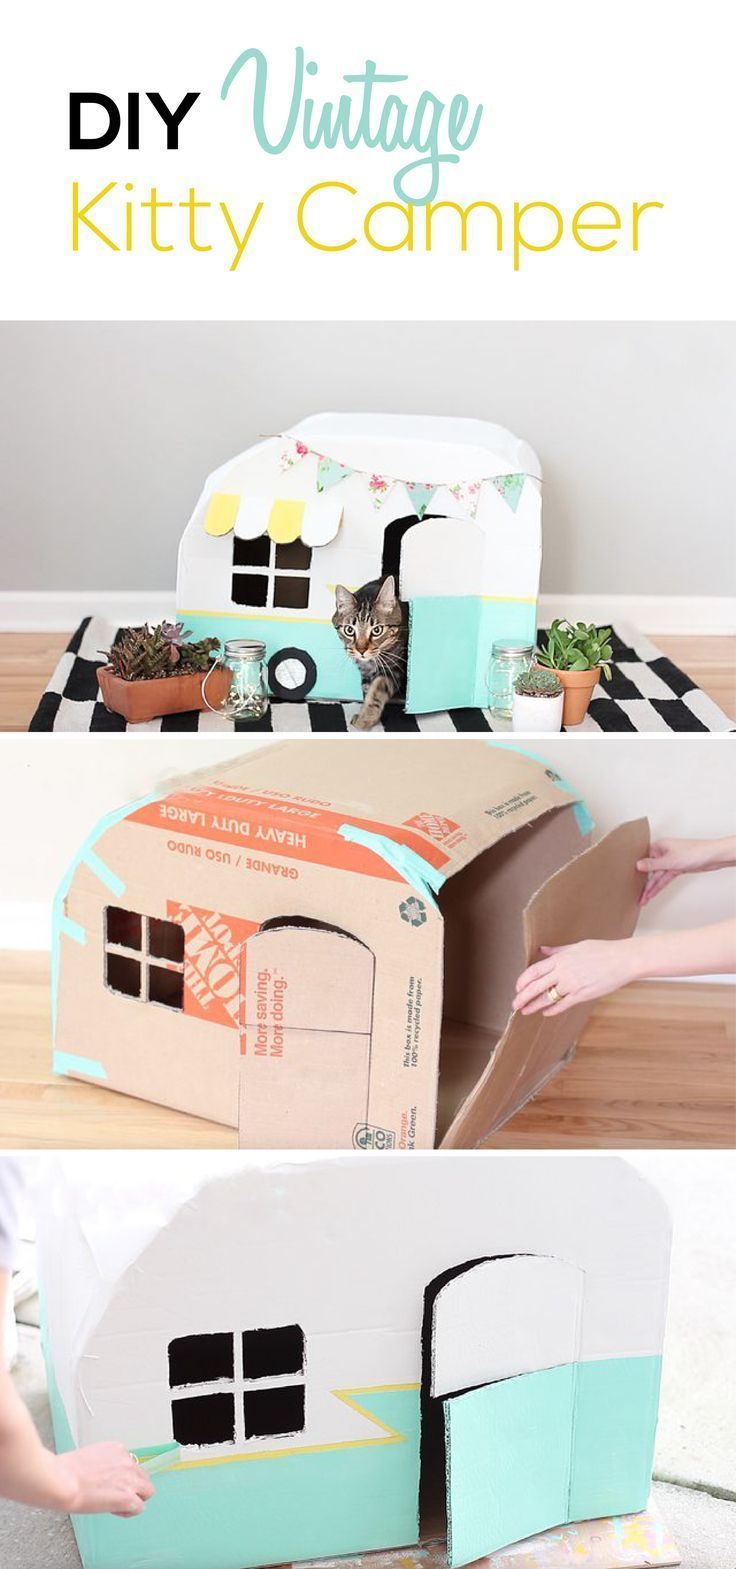 Photo of How To Make A Vintage Kitty Camper Out Of Cardboard Boxes | Cuteness